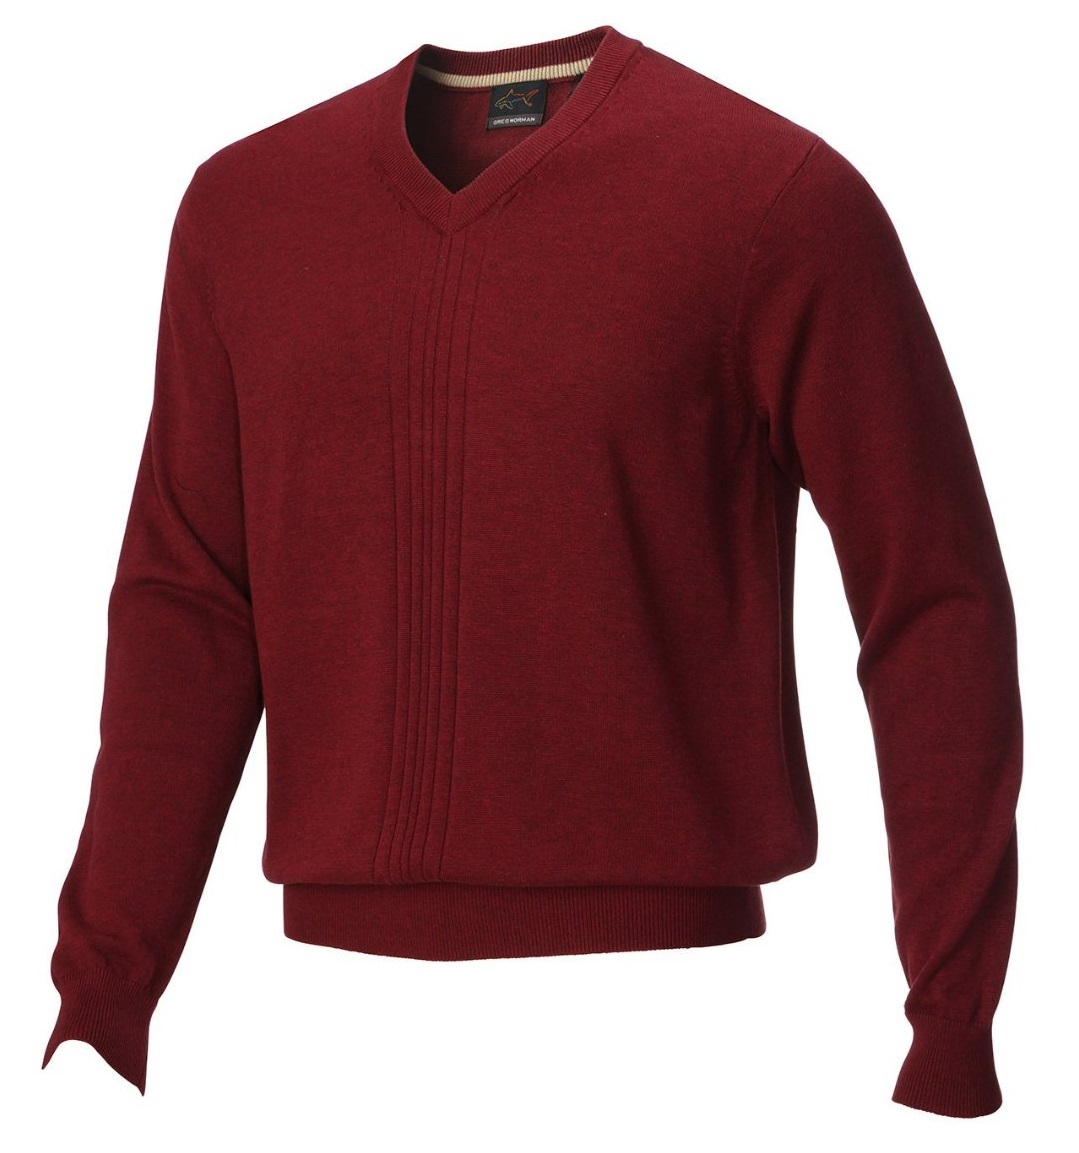 Shop for and buy pullover online at Macy's. Find pullover at Macy's.